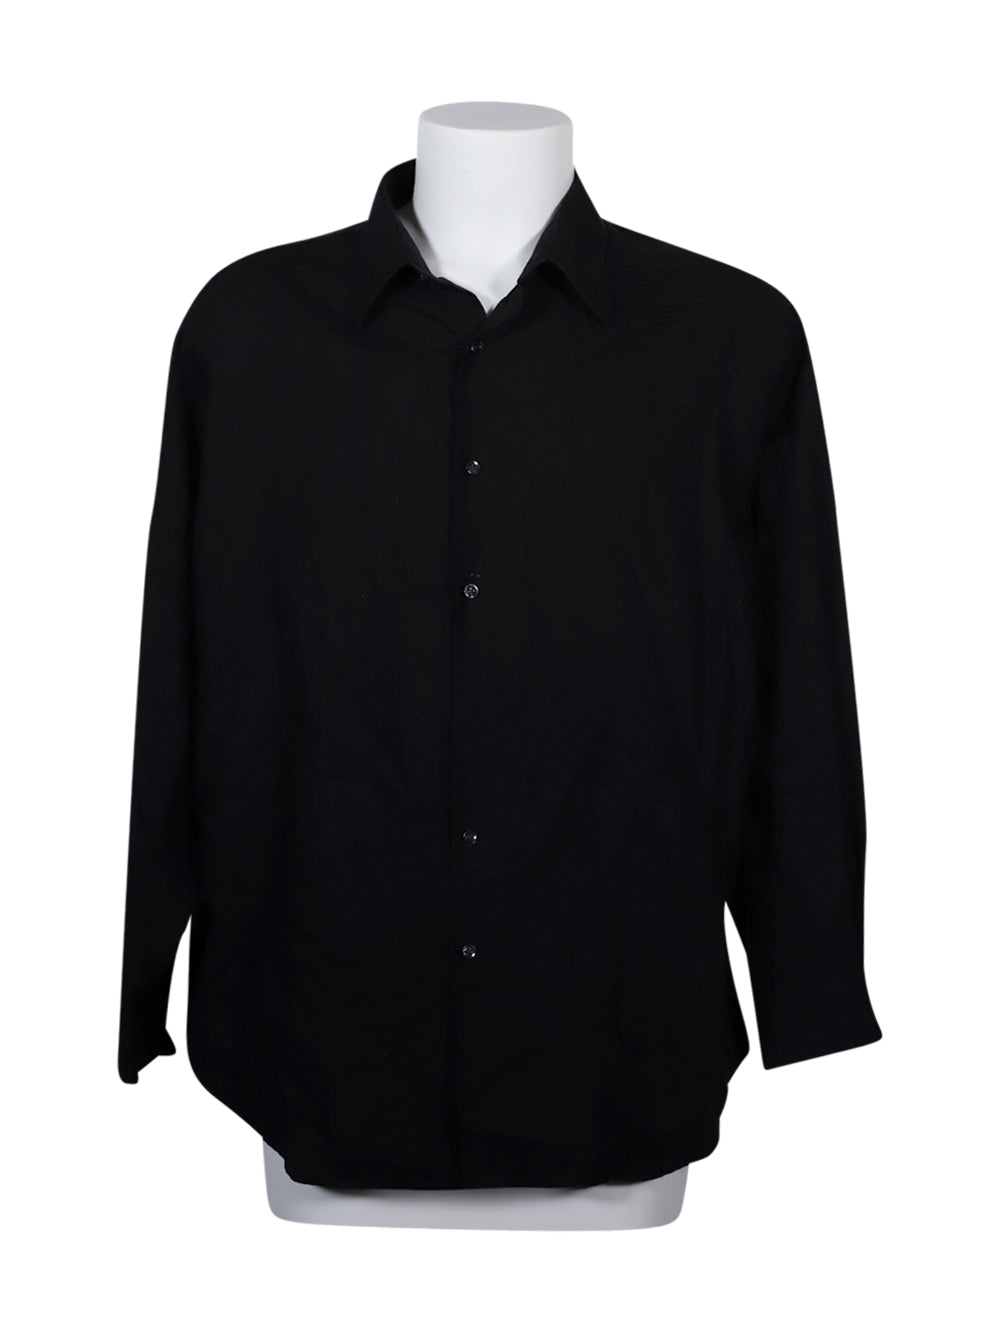 Front photo of Preloved Perry Ellis Black Man's shirt - size 44/XXL